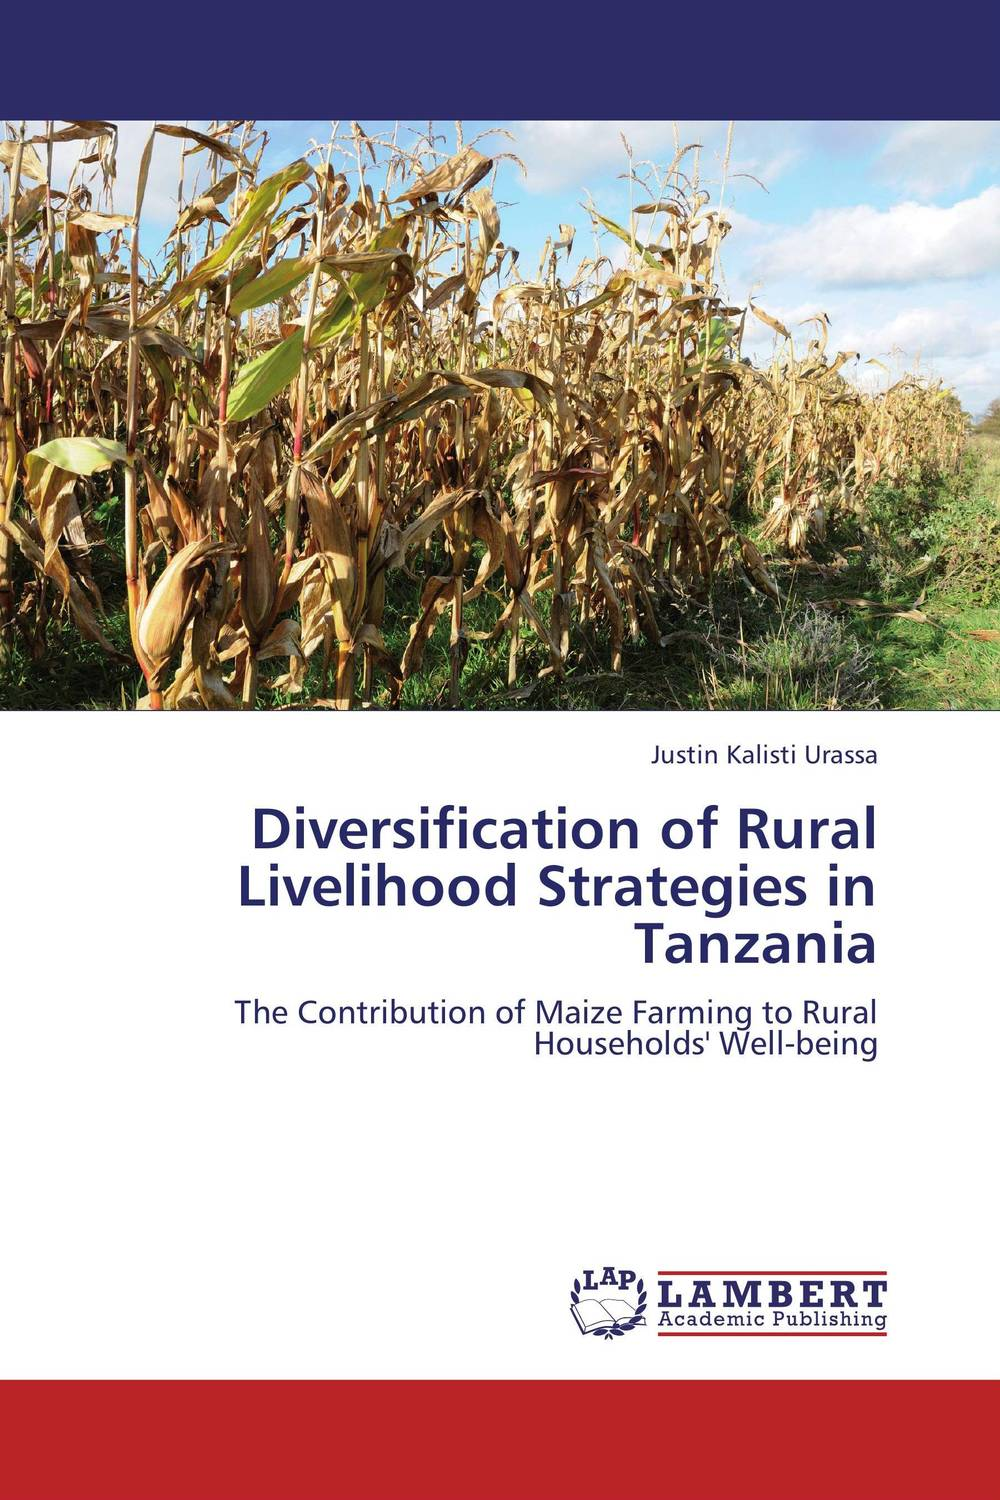 Diversification of Rural Livelihood Strategies in Tanzania impact of livelihood diversification on food security